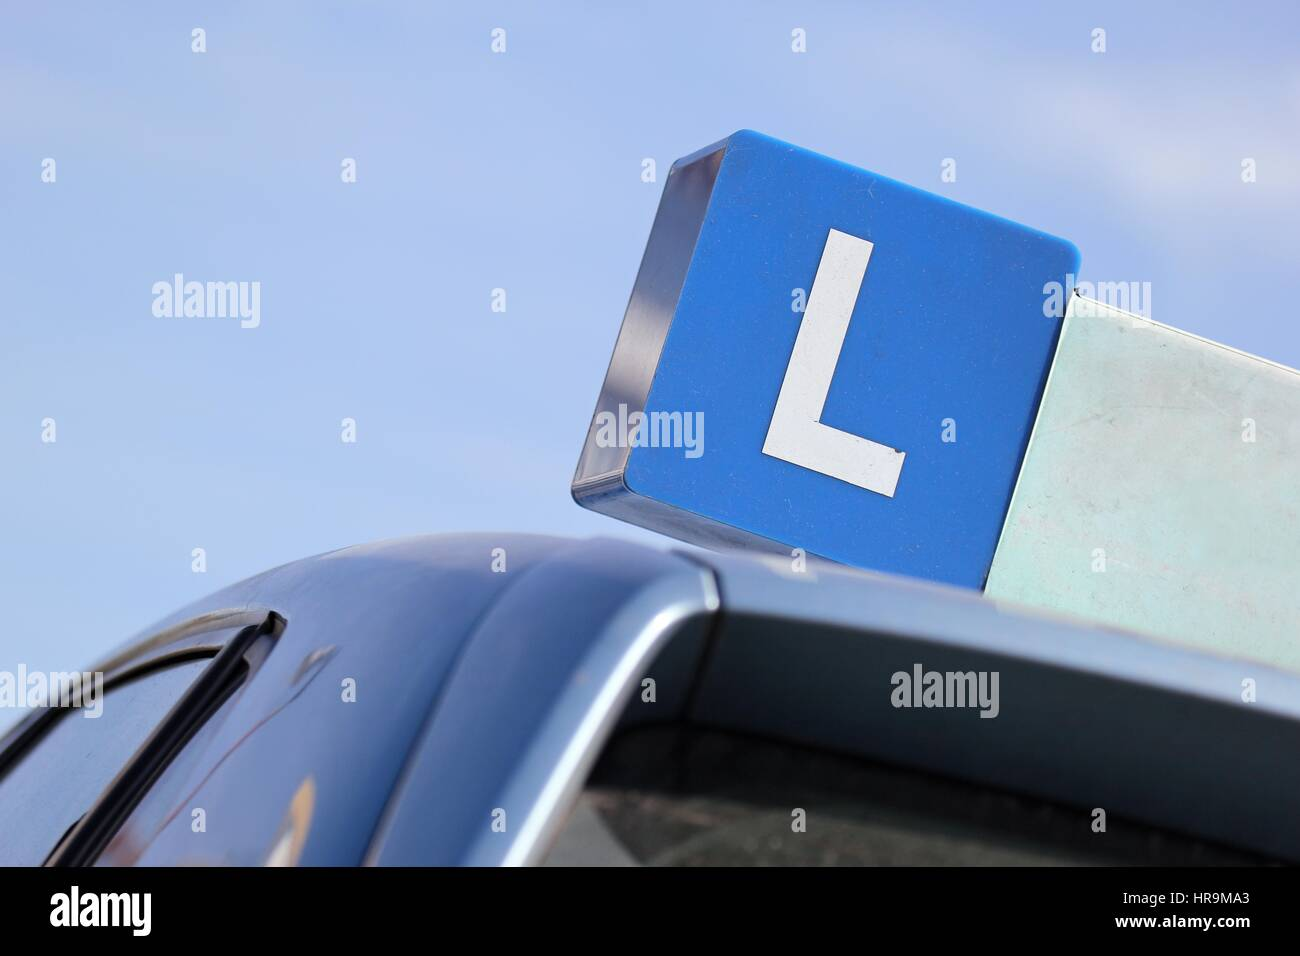 Dutch driving school car sign - Stock Image